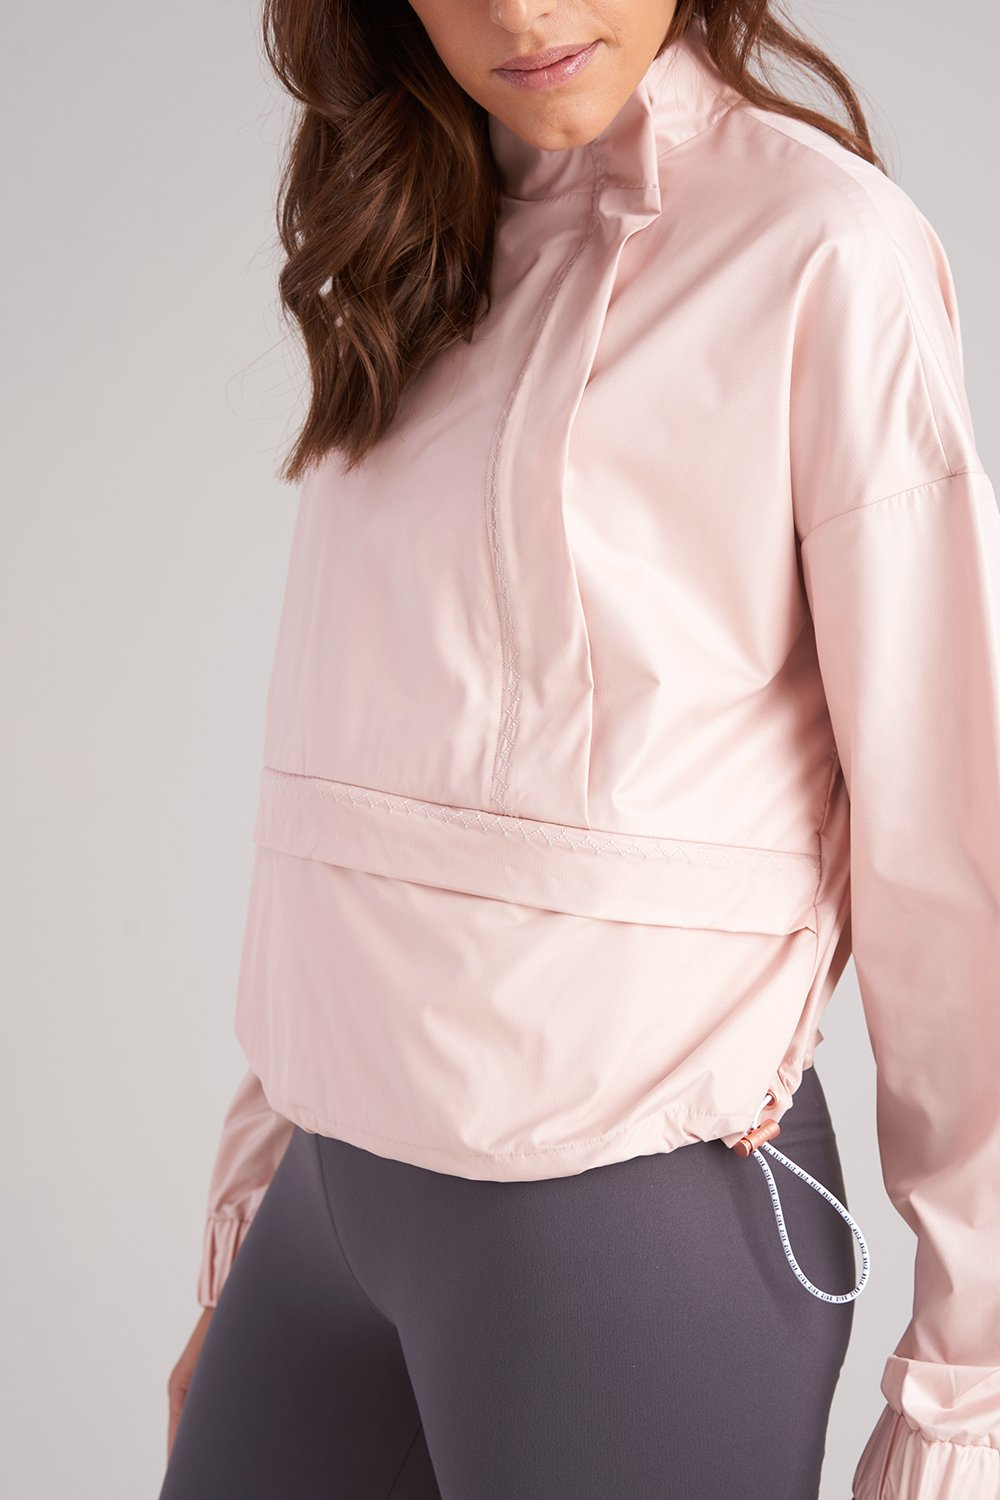 Zise Coco Ripstop Jacket - BLOCH US